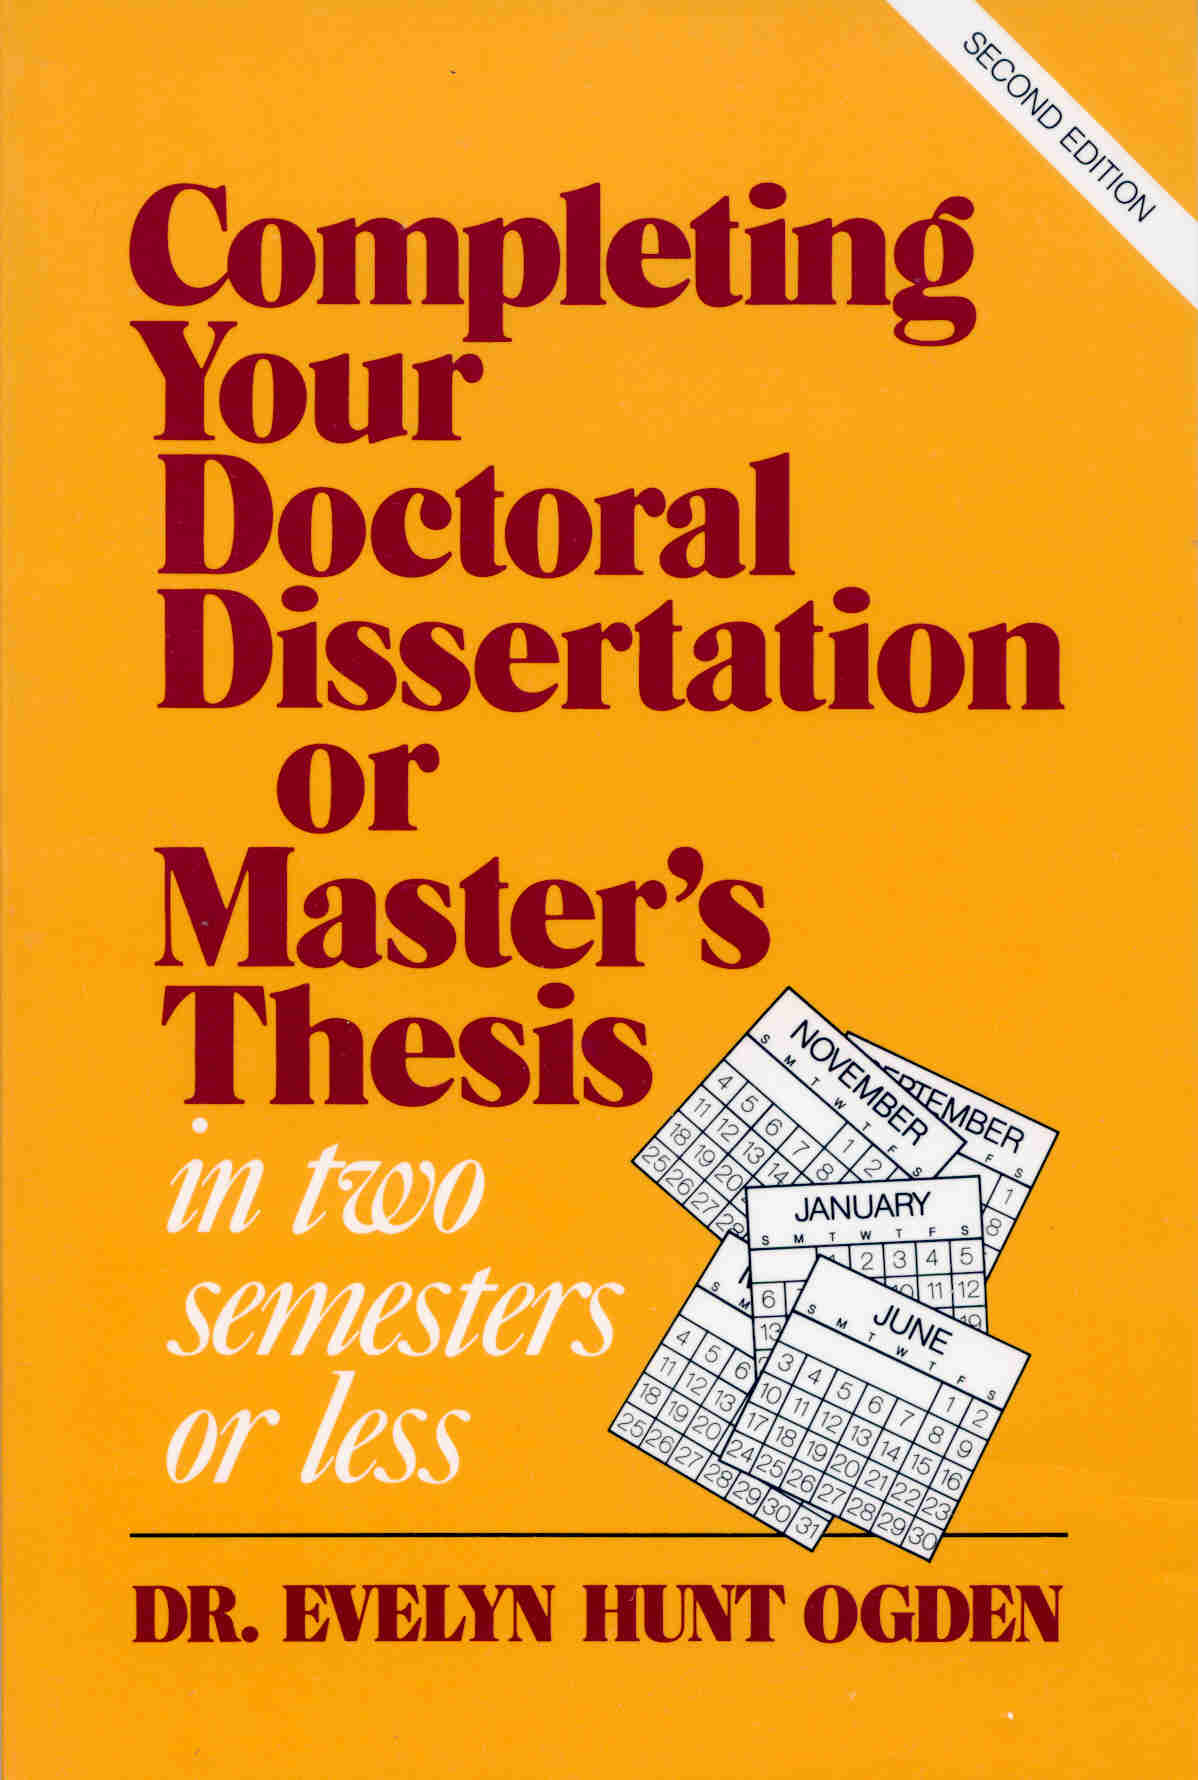 Online Dissertations And Theses 95